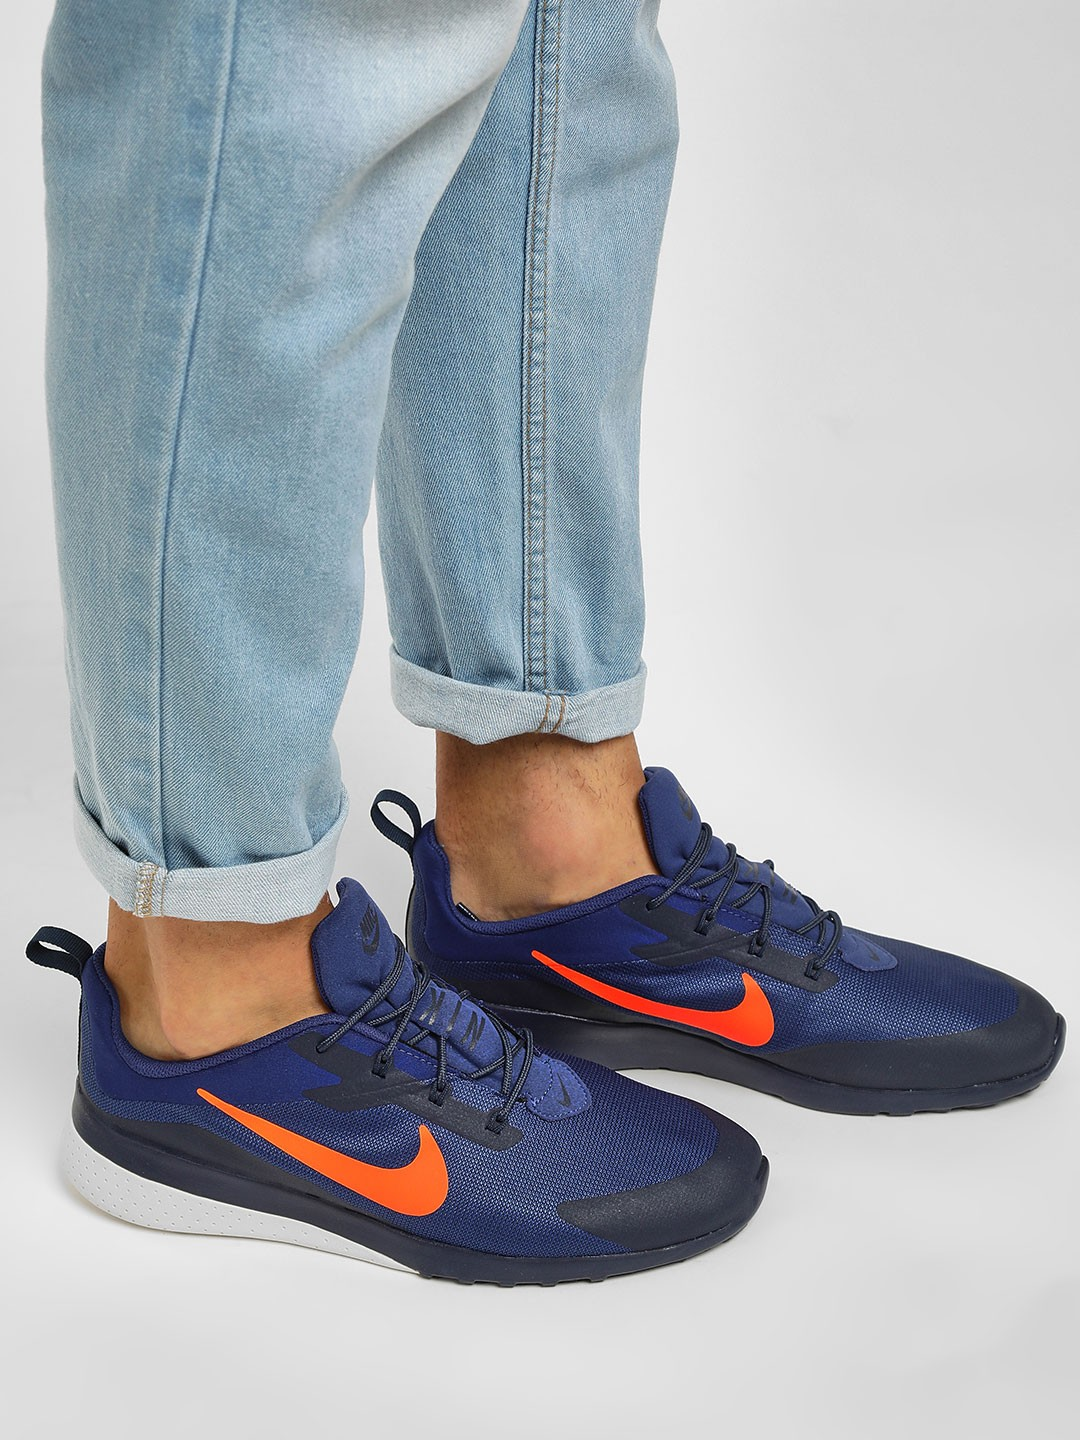 Nike Blue Ck Racer 2 Shoes 1